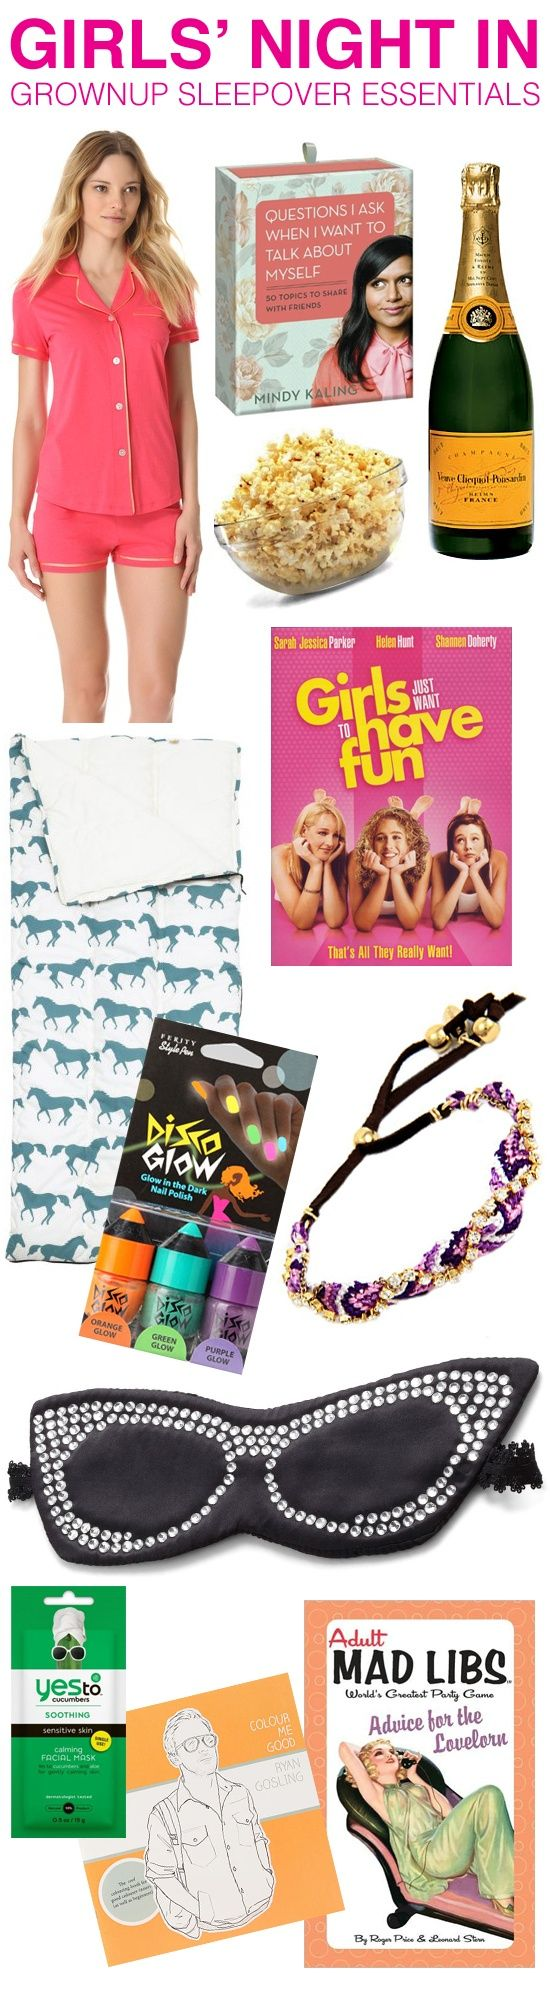 What you need to throw a grownup sleepover party for your girlfriends!